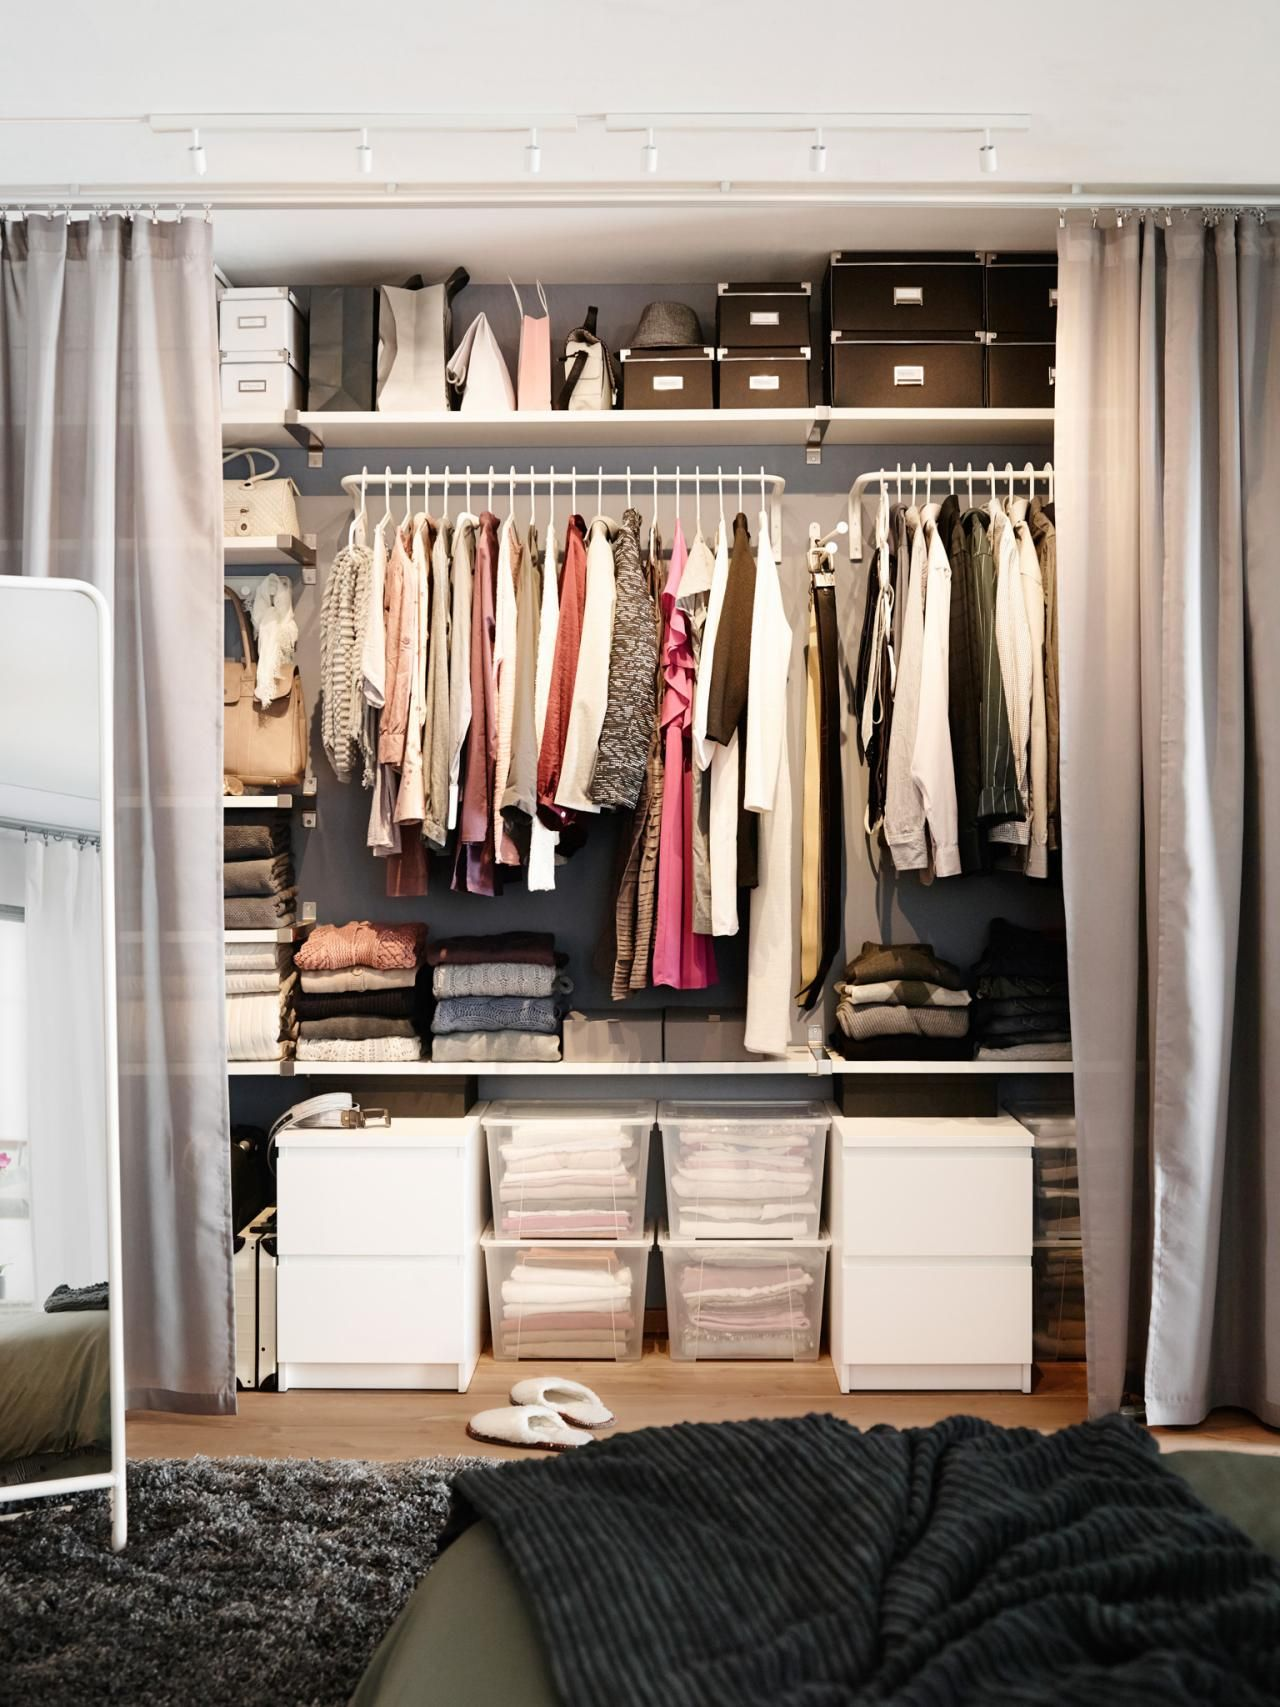 Small Bedroom Wardrobe Solutions Small Space Decorating Donts New Life The Closet And Design